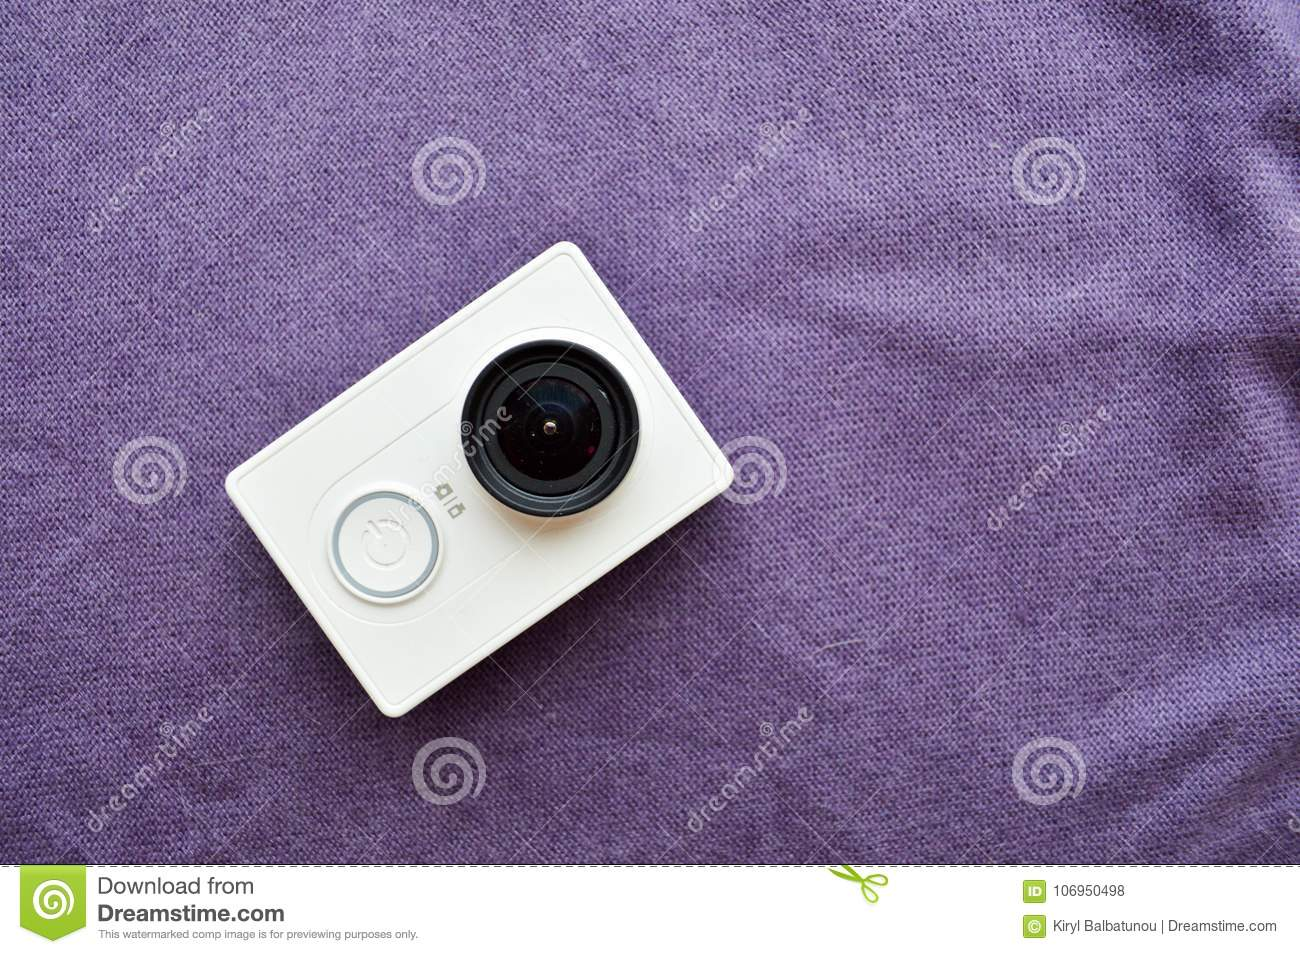 White action camera with a large black len